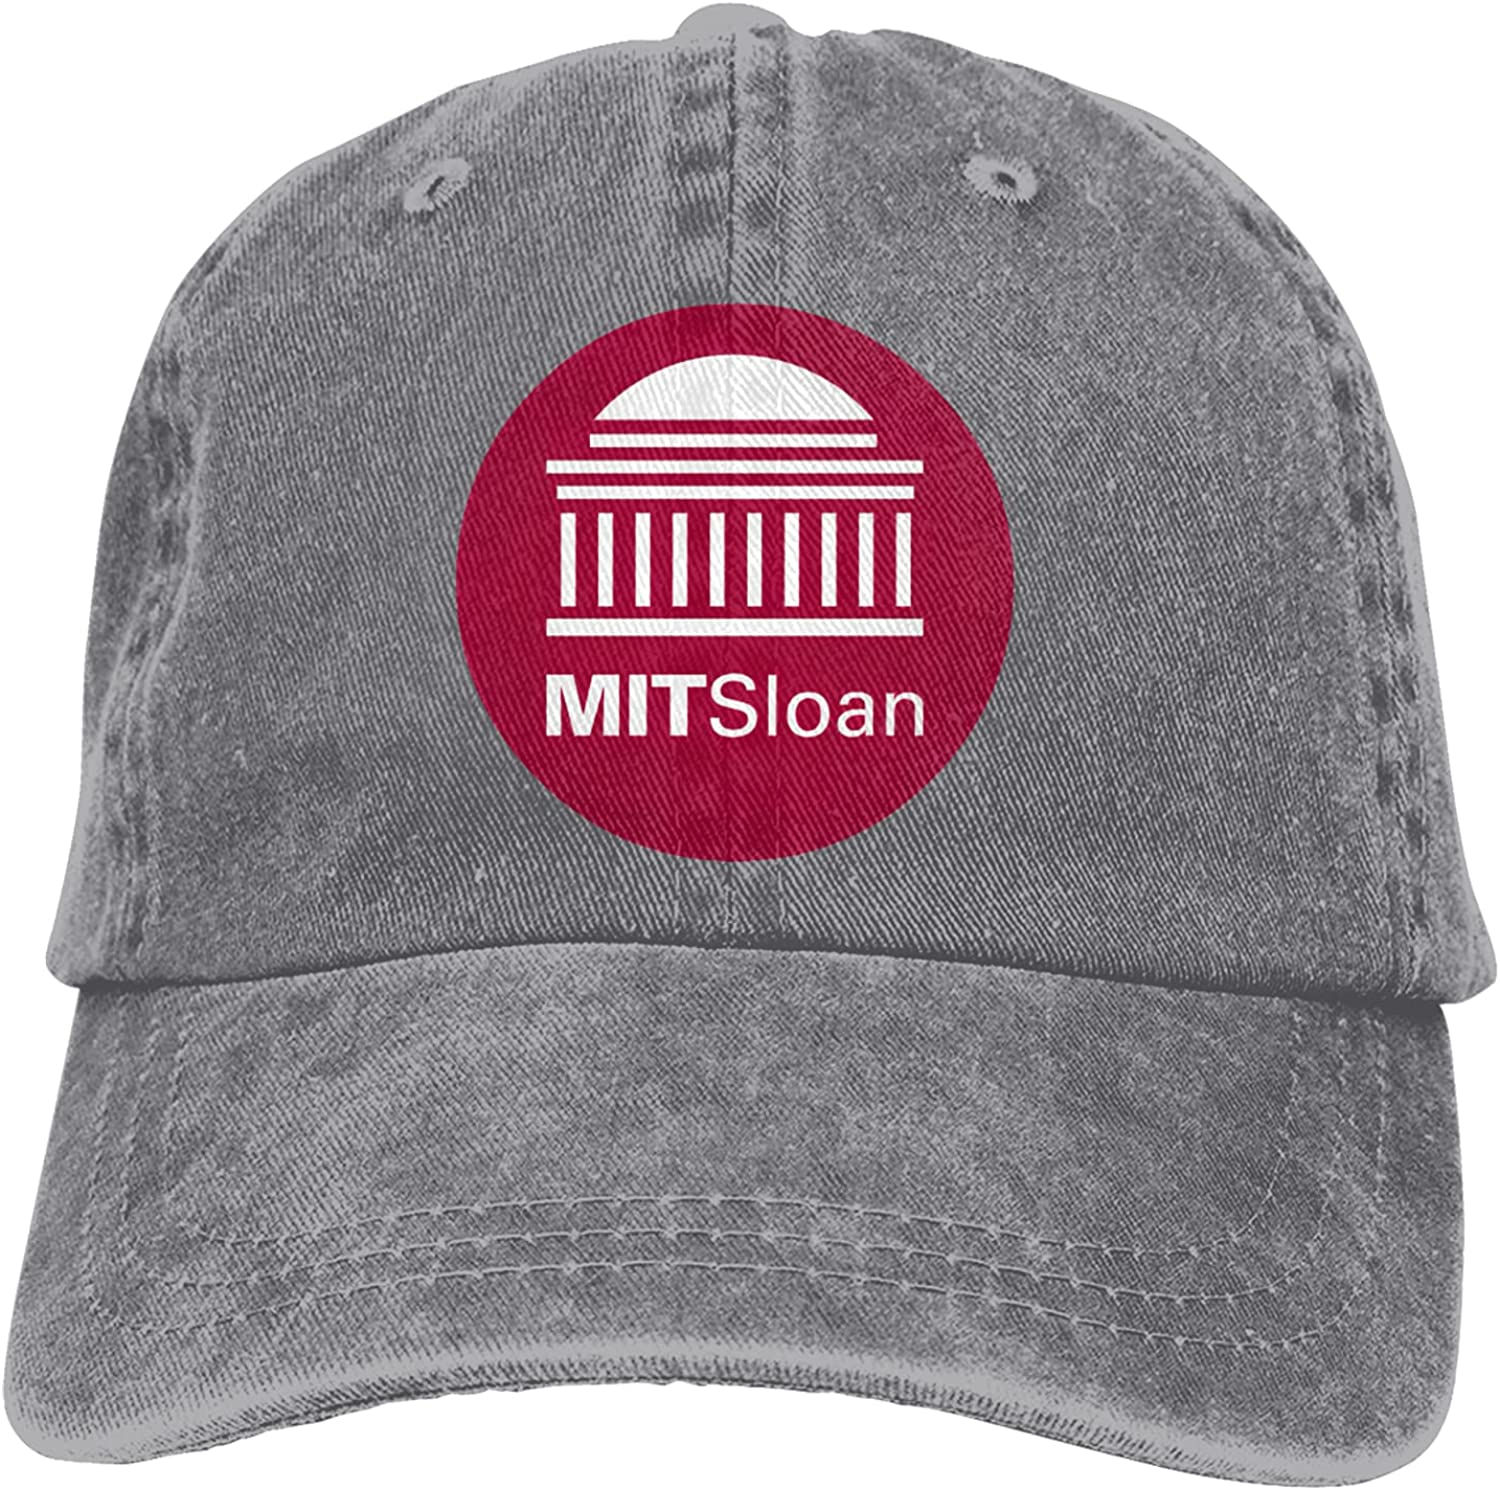 Yund Massachusetts Institute of Technology Ranking TOP4 for Suitable Coll Cap Gifts